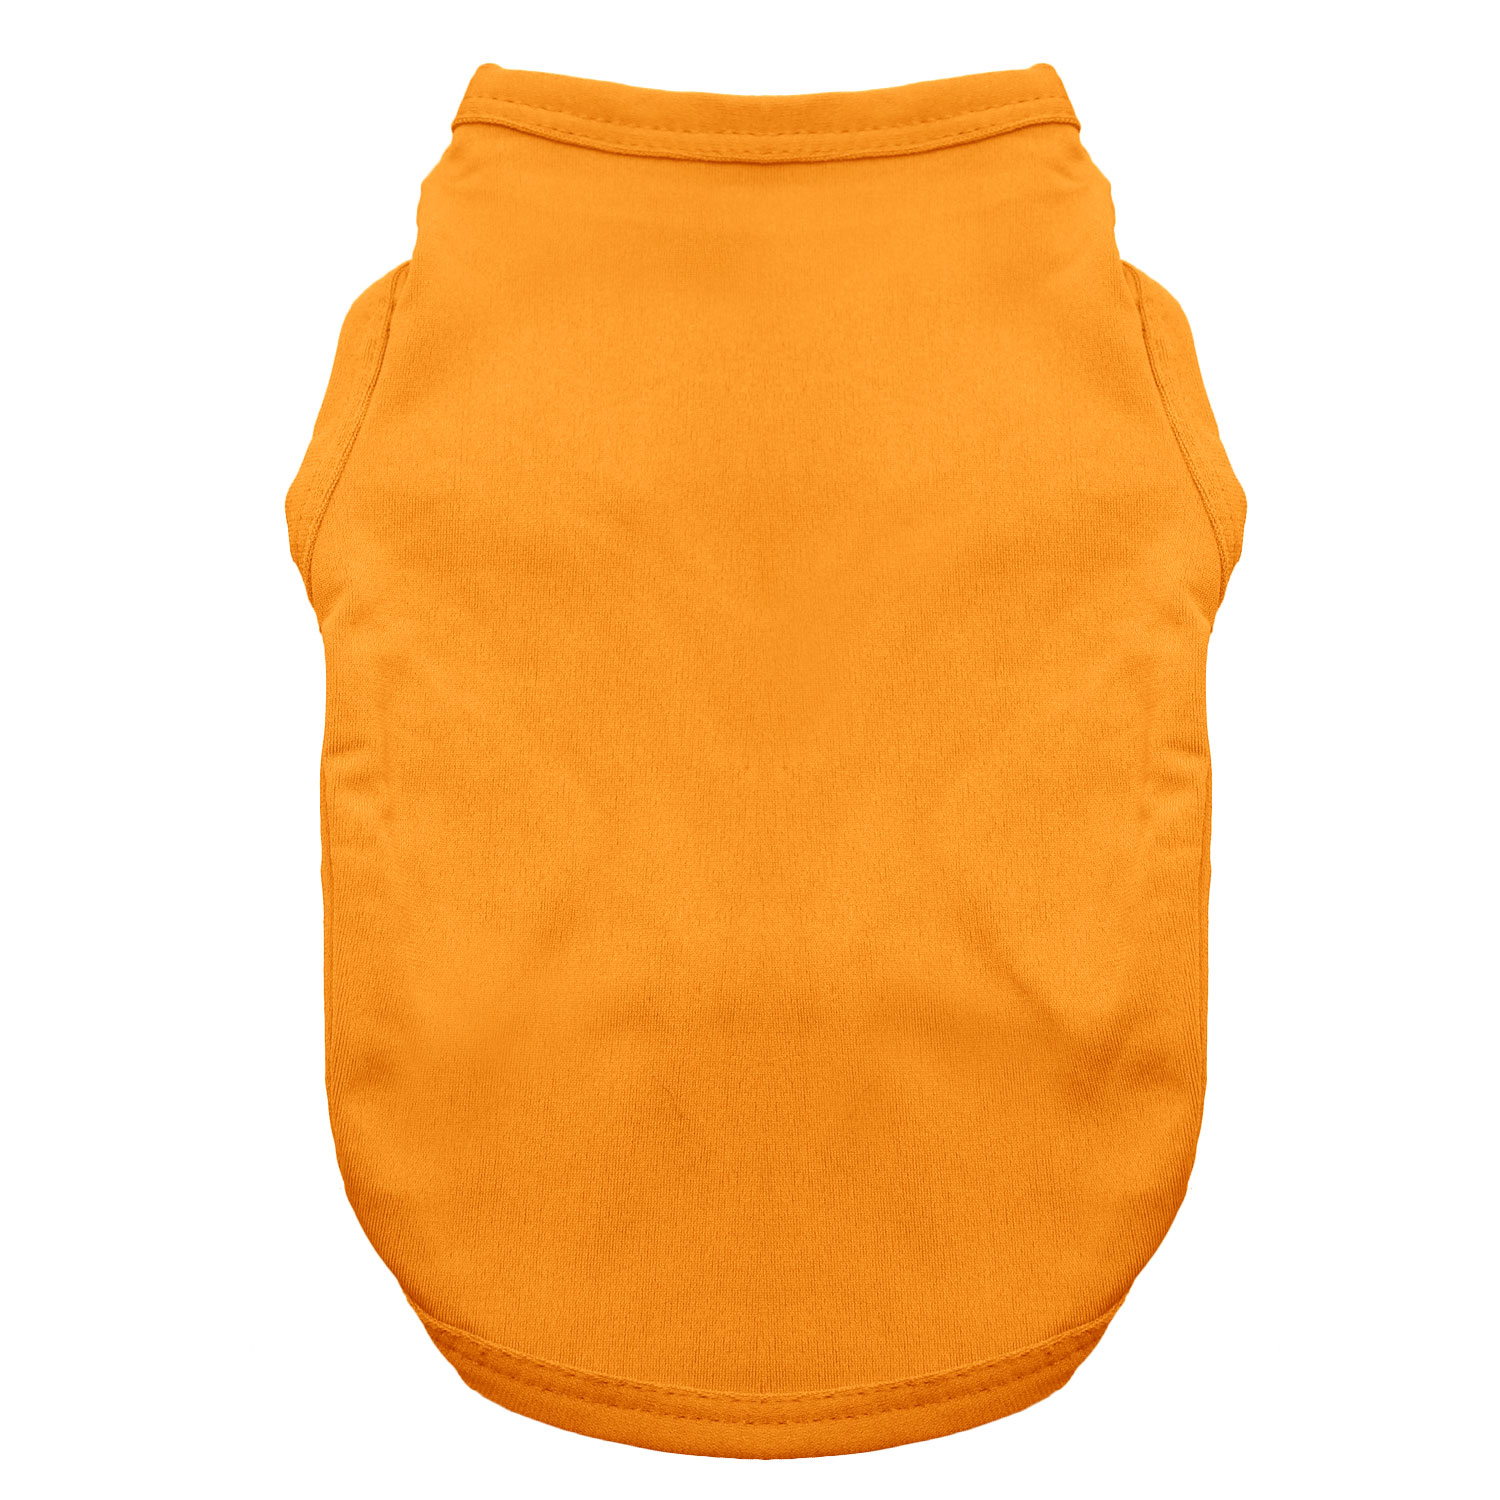 Basic Tank Dog Shirt - Orange Popsicle